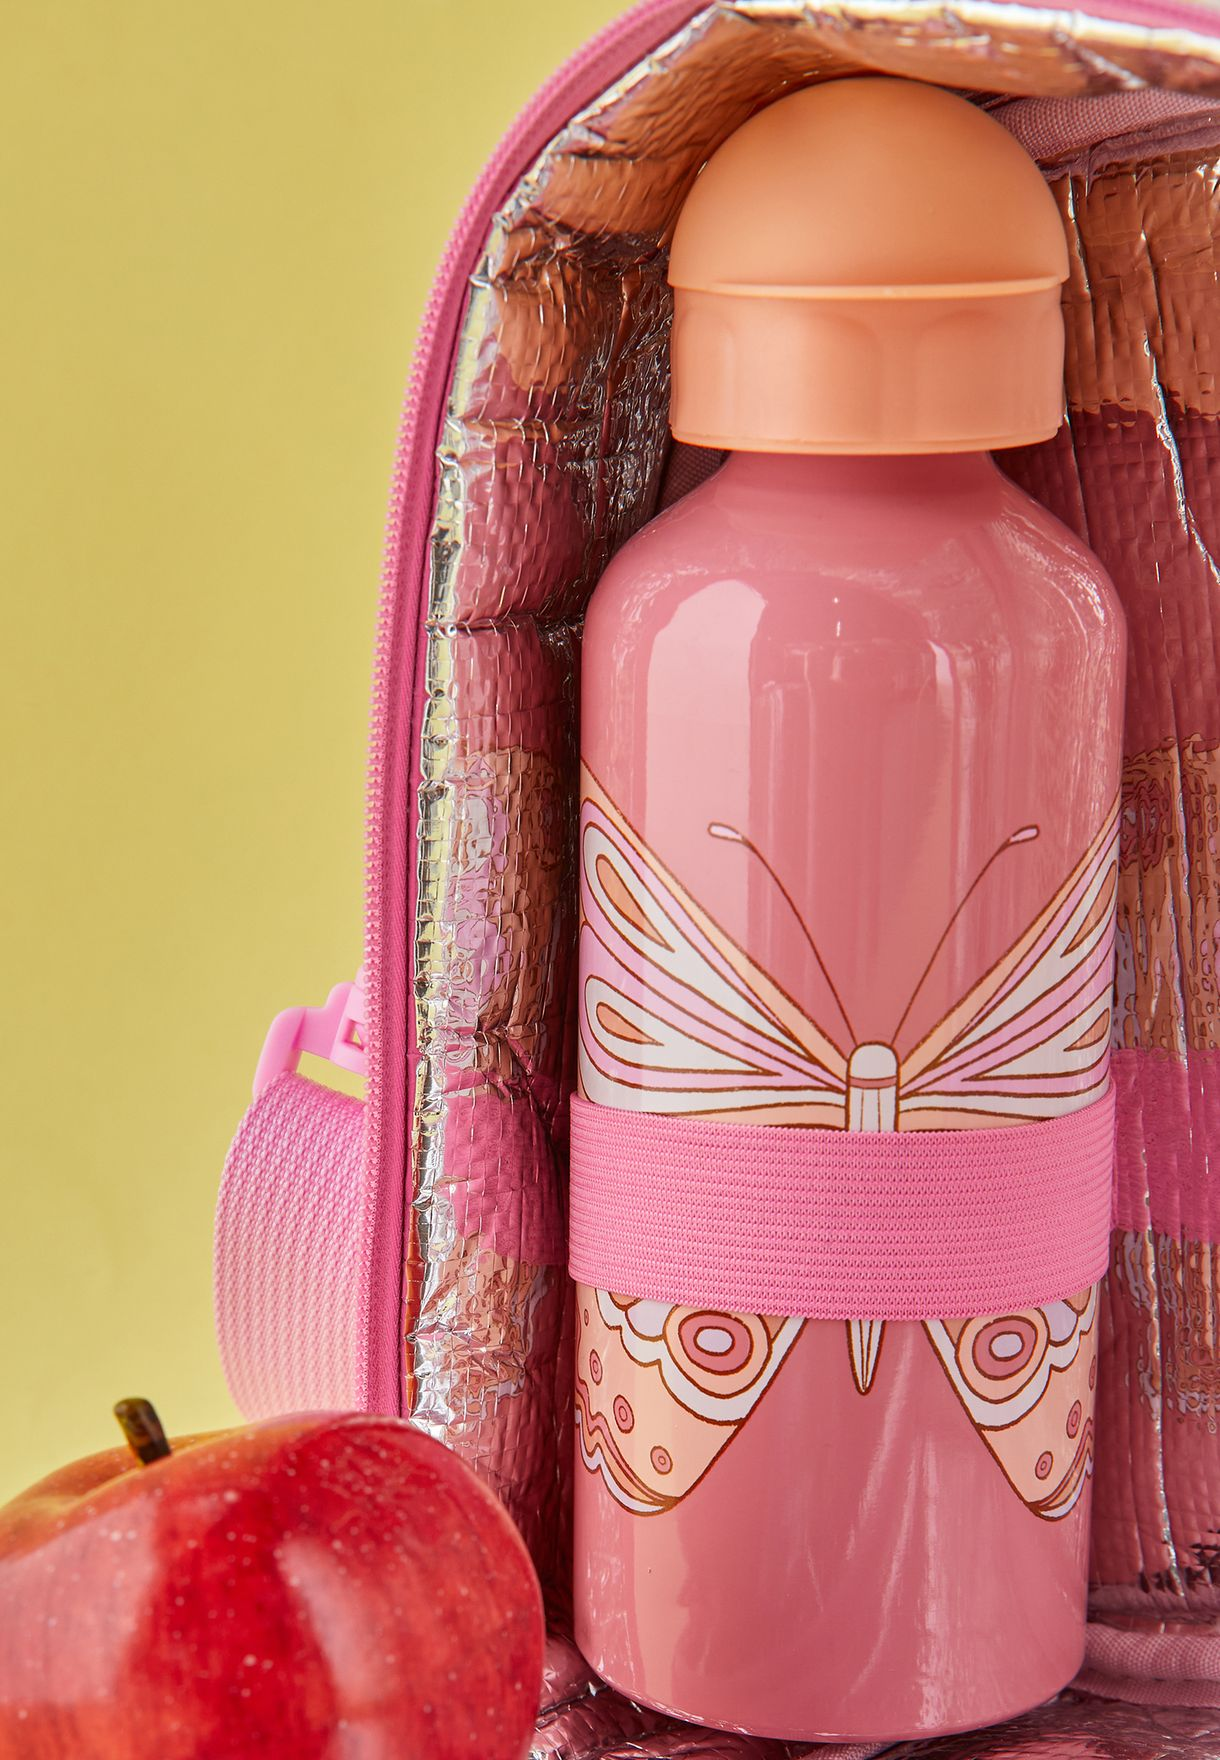 Butterfly Drink Bottle - 600 ml